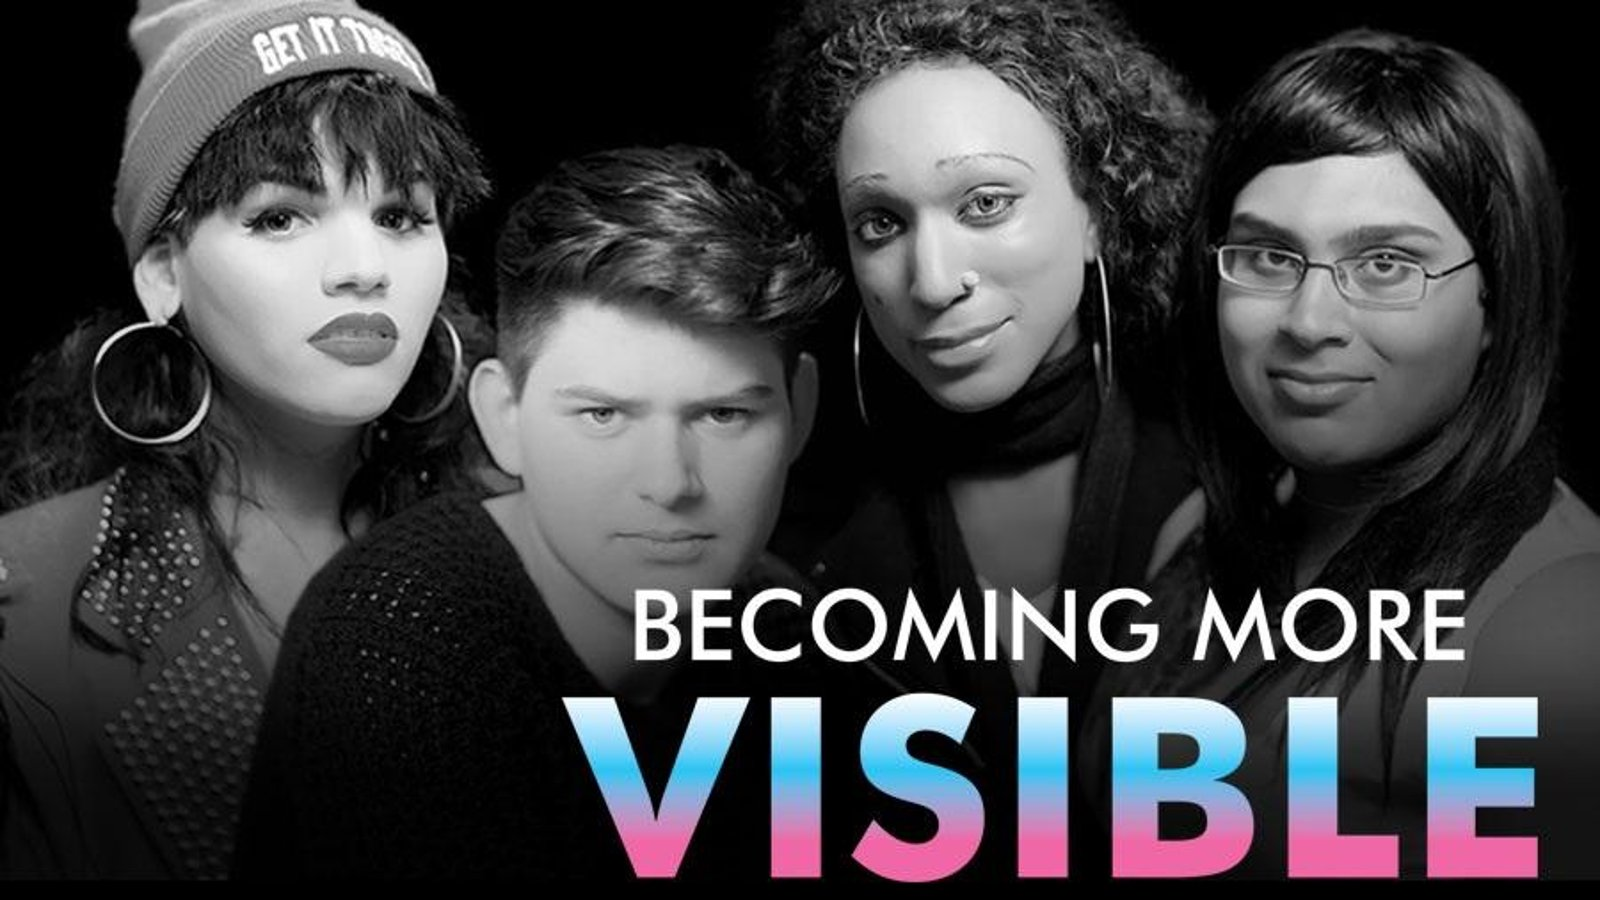 Becoming More Visible - Young Transgender Adults on a Journey to Become More Visible